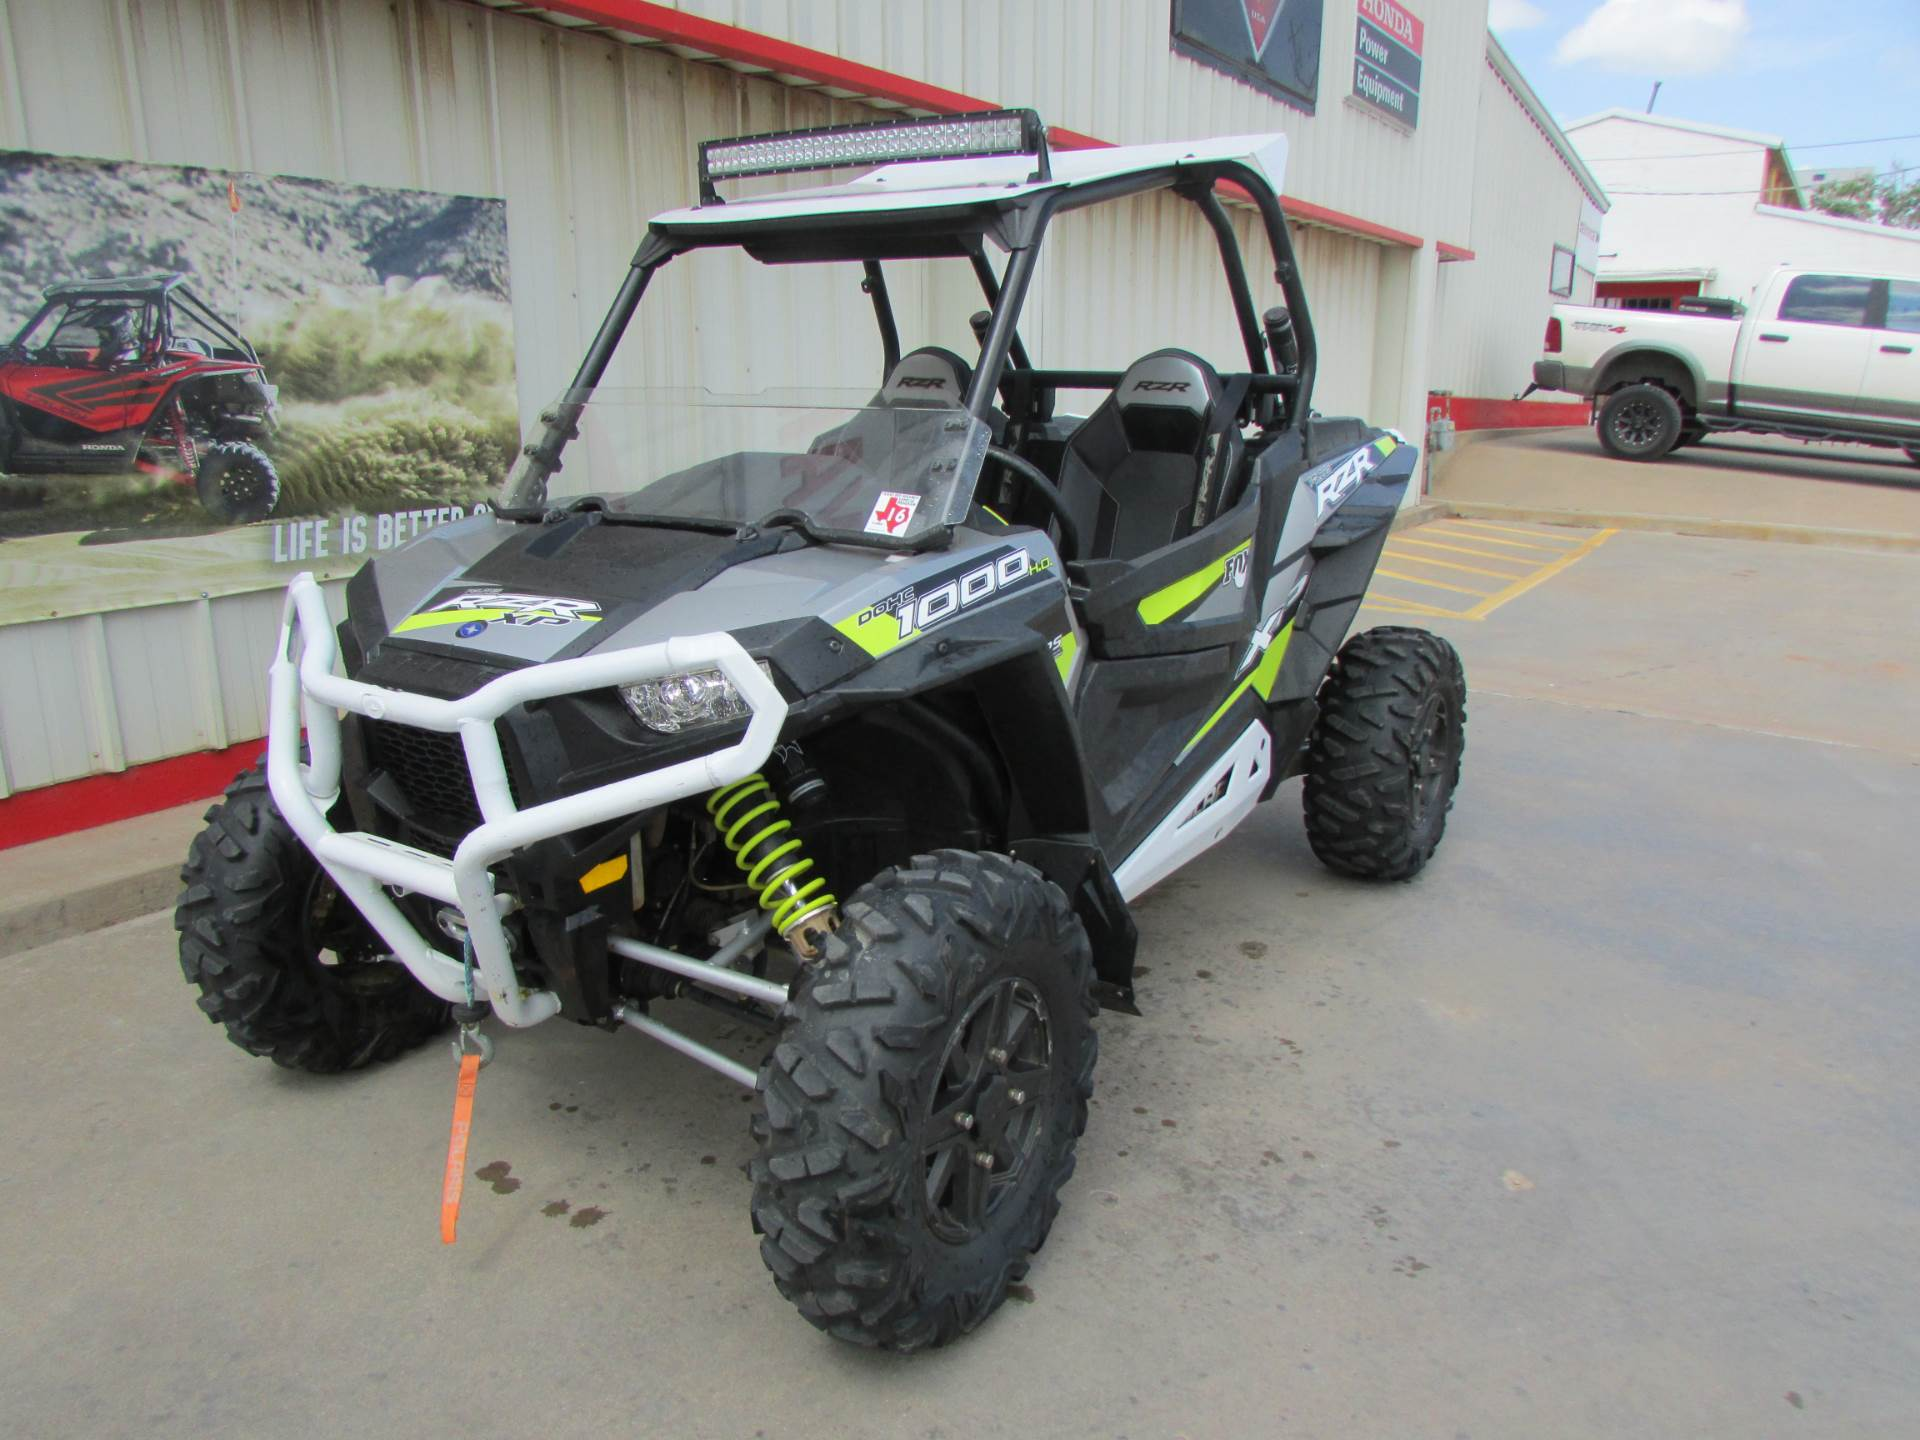 2015 Polaris RZR® XP 1000 EPS in Wichita Falls, Texas - Photo 2